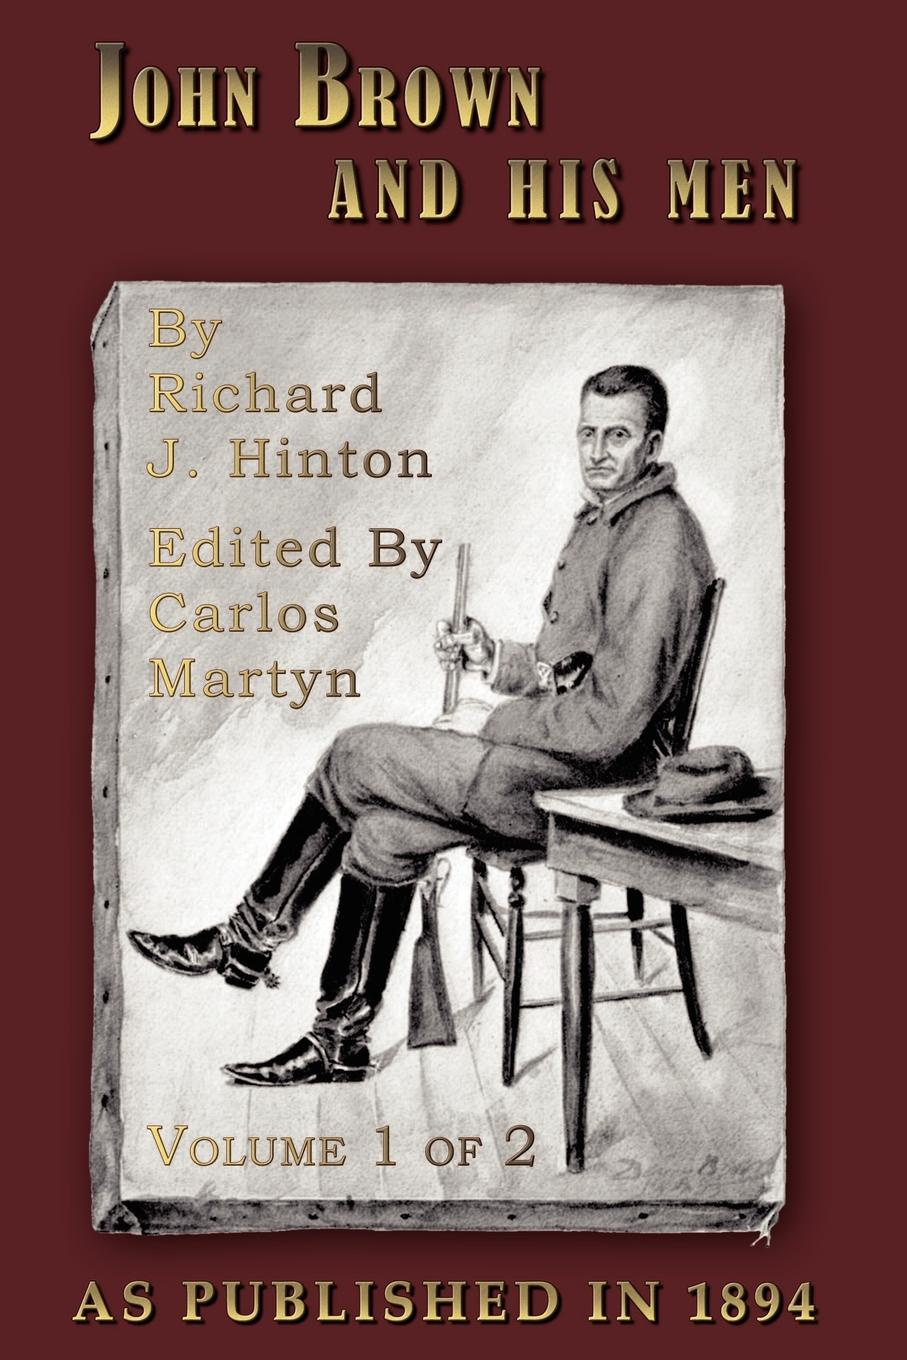 Richard J. Hinton John Brown and His Men. With Some Account of the Roads They Traveled to Reach Harper's Ferry, Volume 1 стоимость